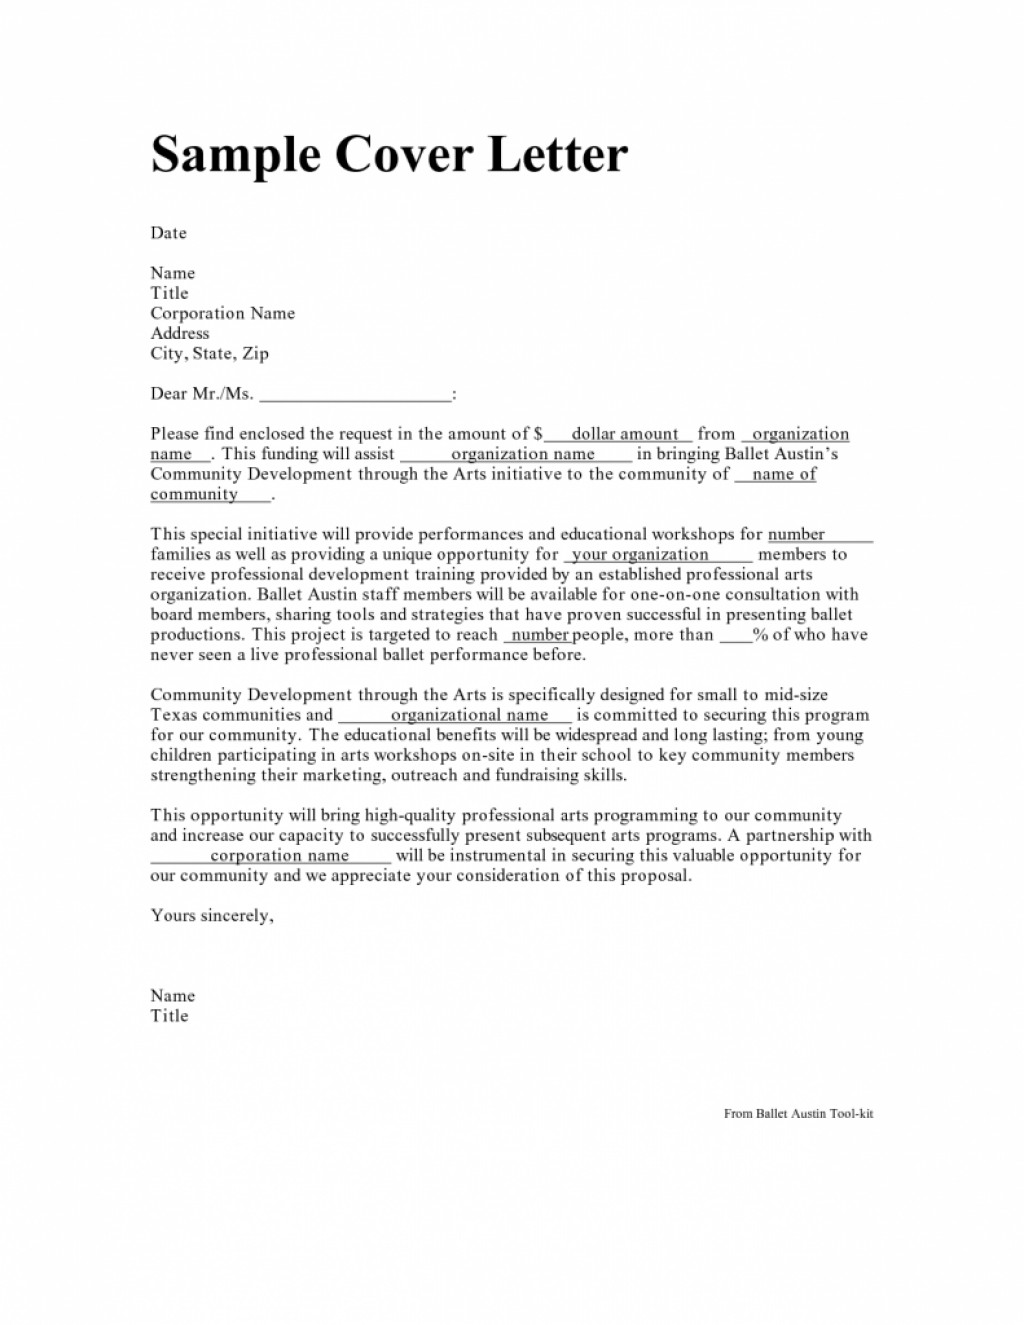 001 Essay Example Cover Letter For Singular Competition Scientific Paper Submission College Large